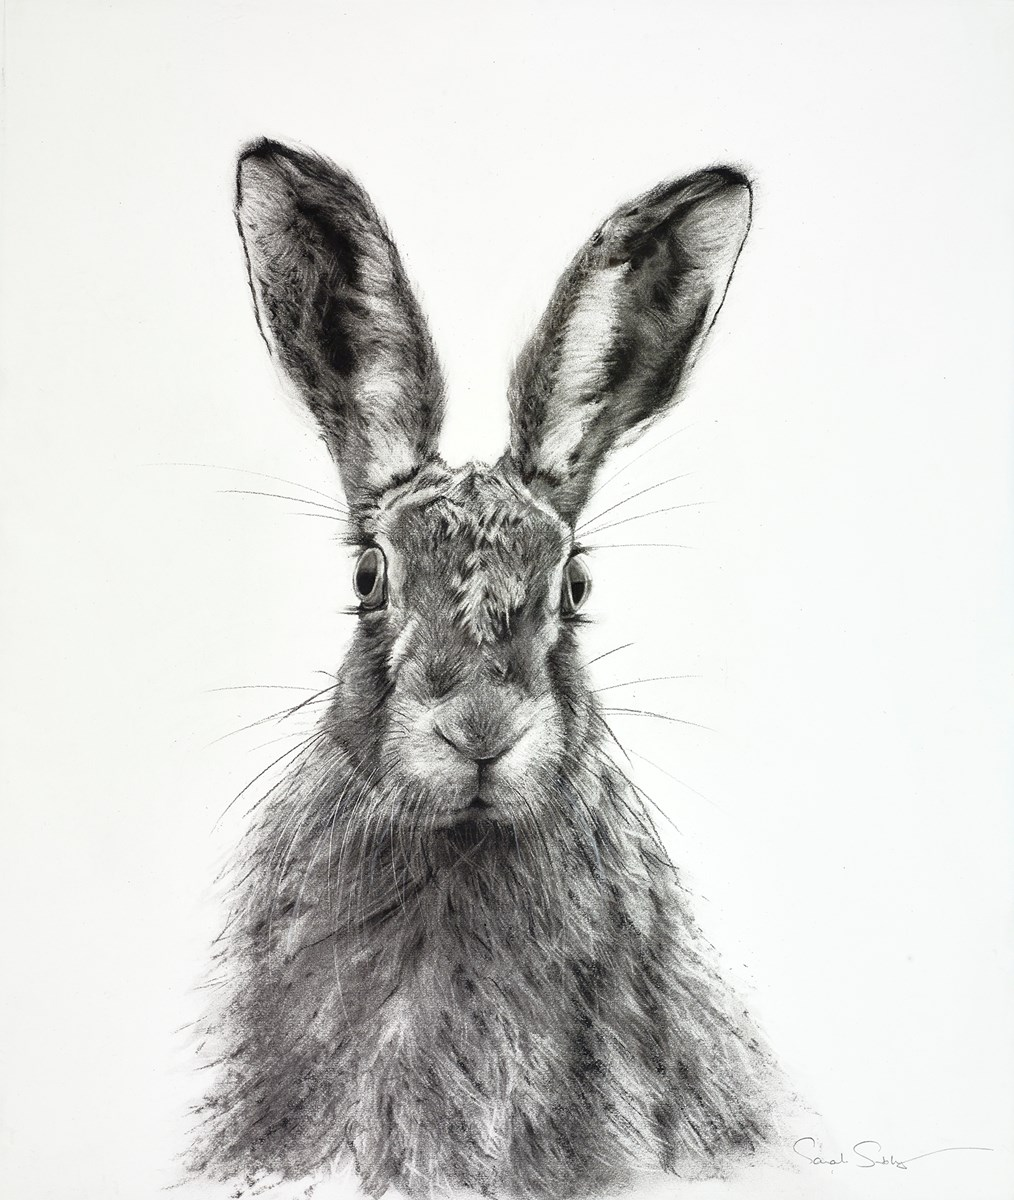 Surprise, Surprise! by sarah stokes -  sized 22x26 inches. Available from Whitewall Galleries